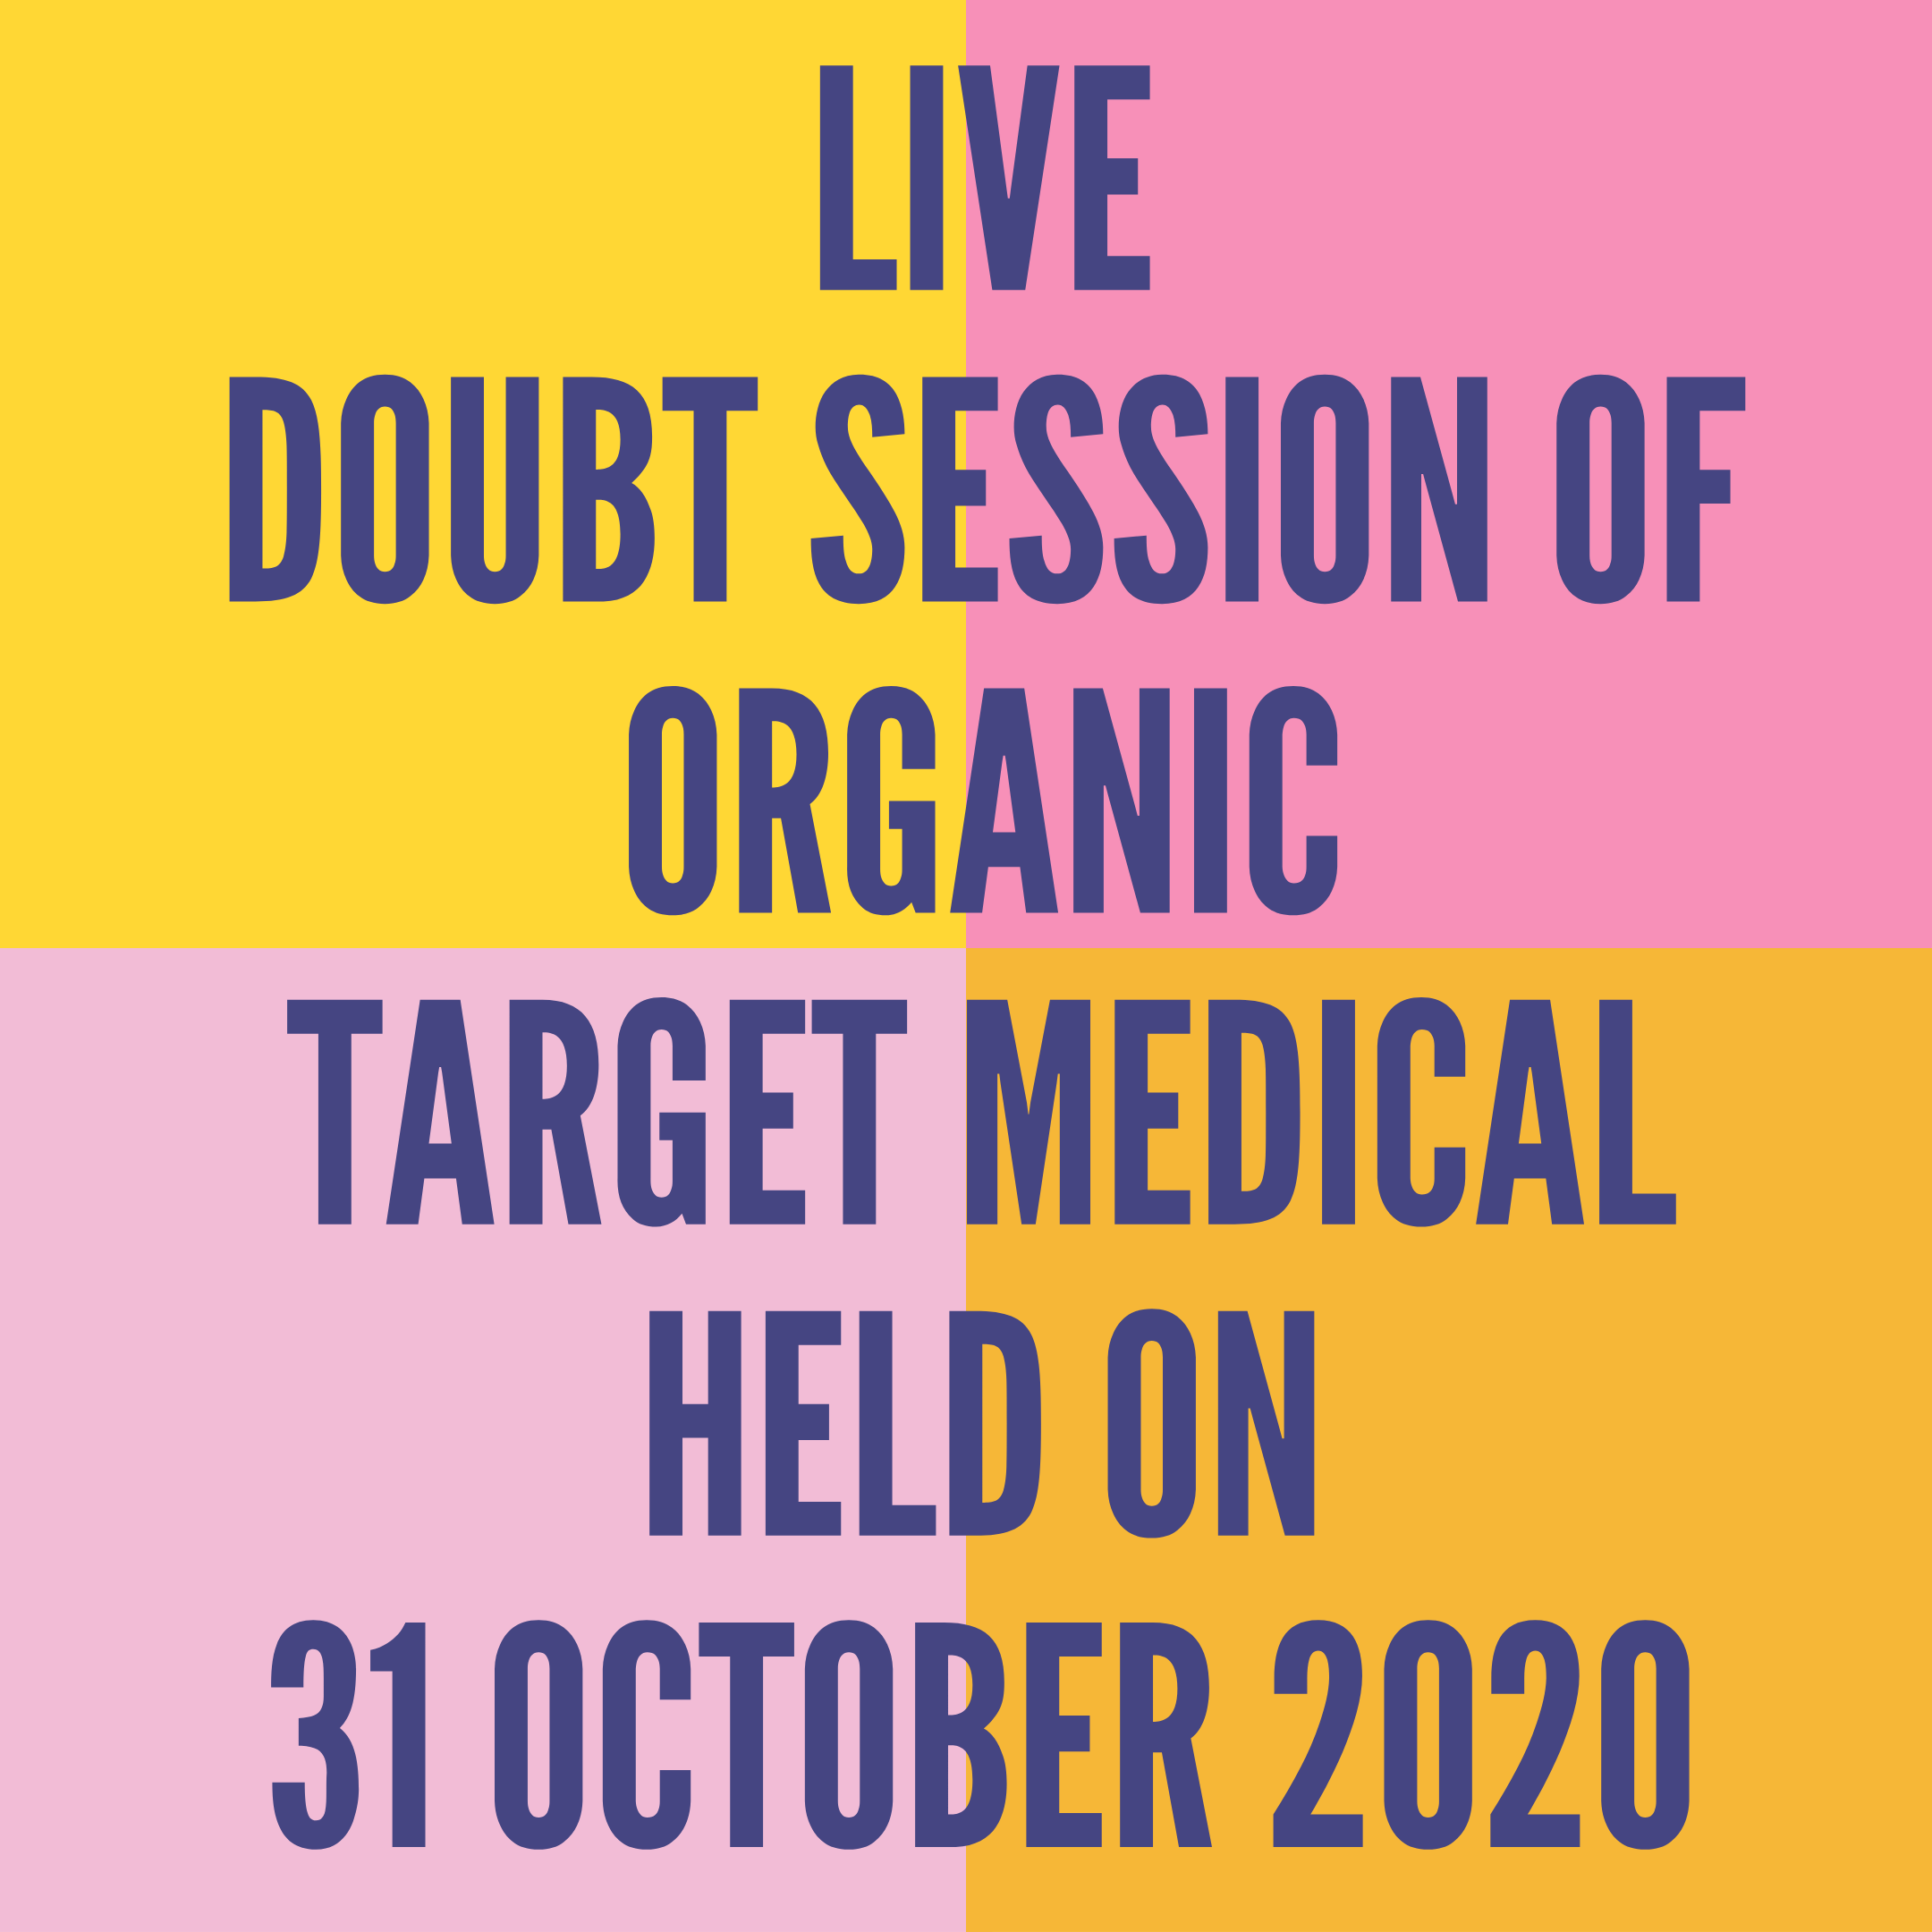 LIVE DOUBT SESSION OF ORGANIC  TARGET MEDICAL HELD ON 31 OCTOBER 2020